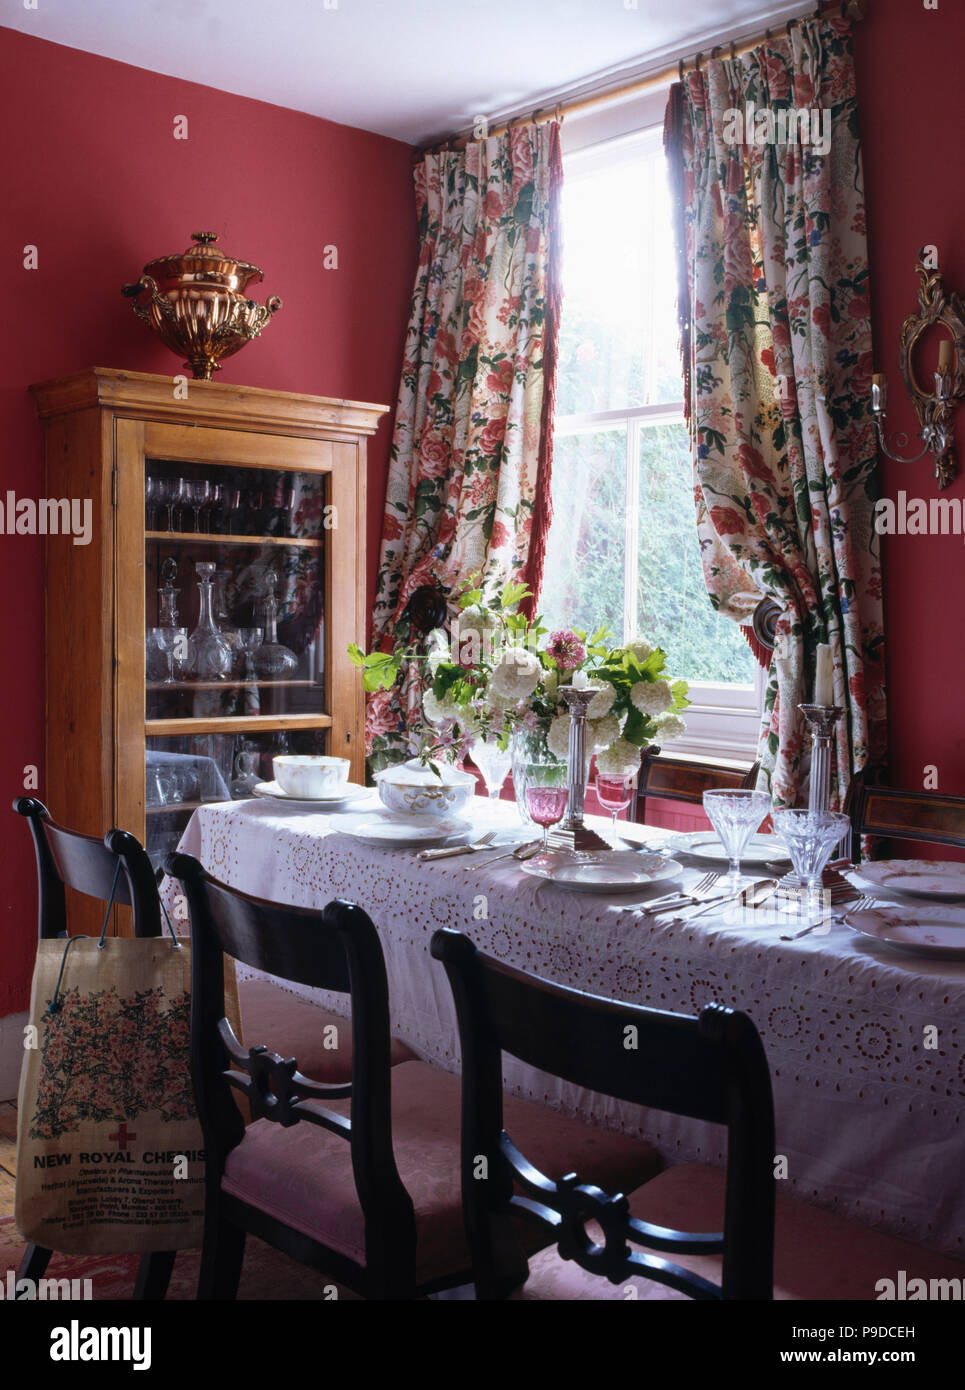 White Linen Cloth On Table Set For Lunch In Madder Red Dining Room With Floral Curtains At The Window Stock Photo Alamy